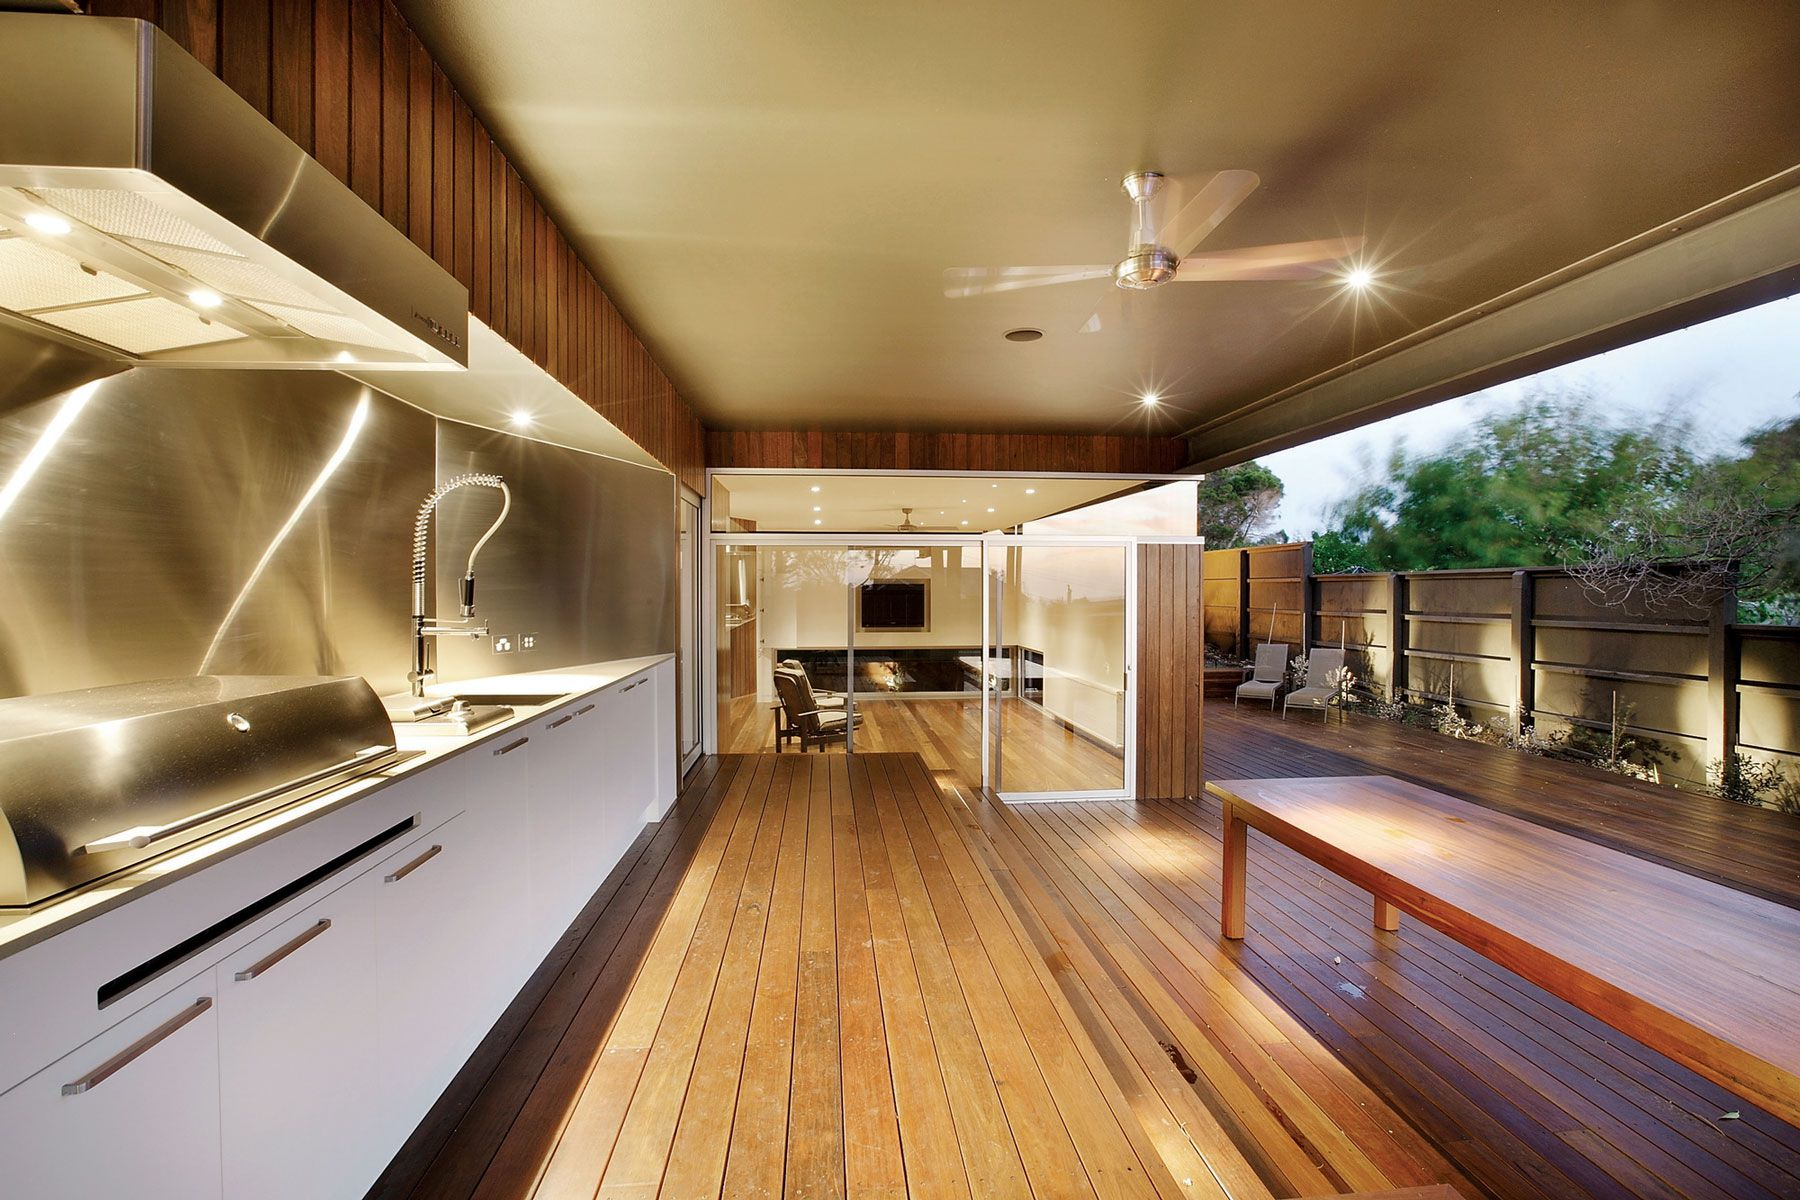 Best Outdoor Kitchens Australia Coronet Grove Residence By Maddison Architects Caandesign